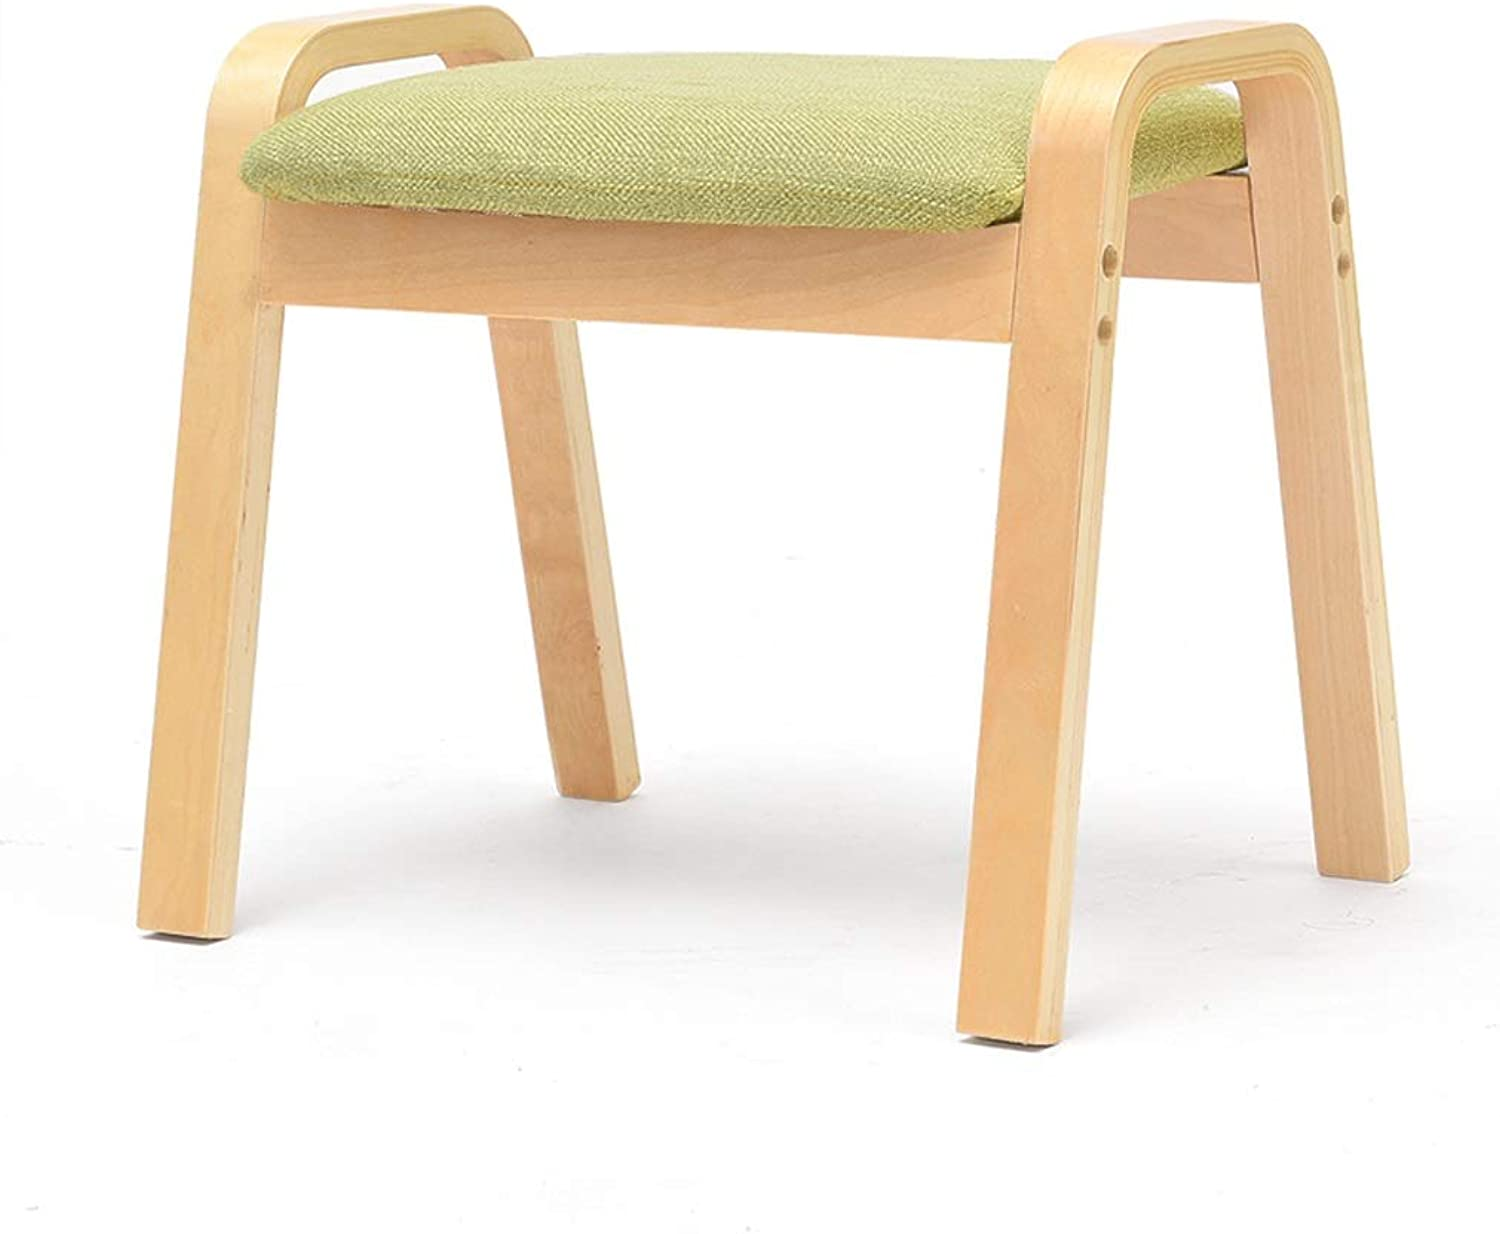 CXQ Fashion Creative Simple Stool Home Stool Change shoes Stool Solid Wood Square Stool Living Room Small Bench (color   Green)